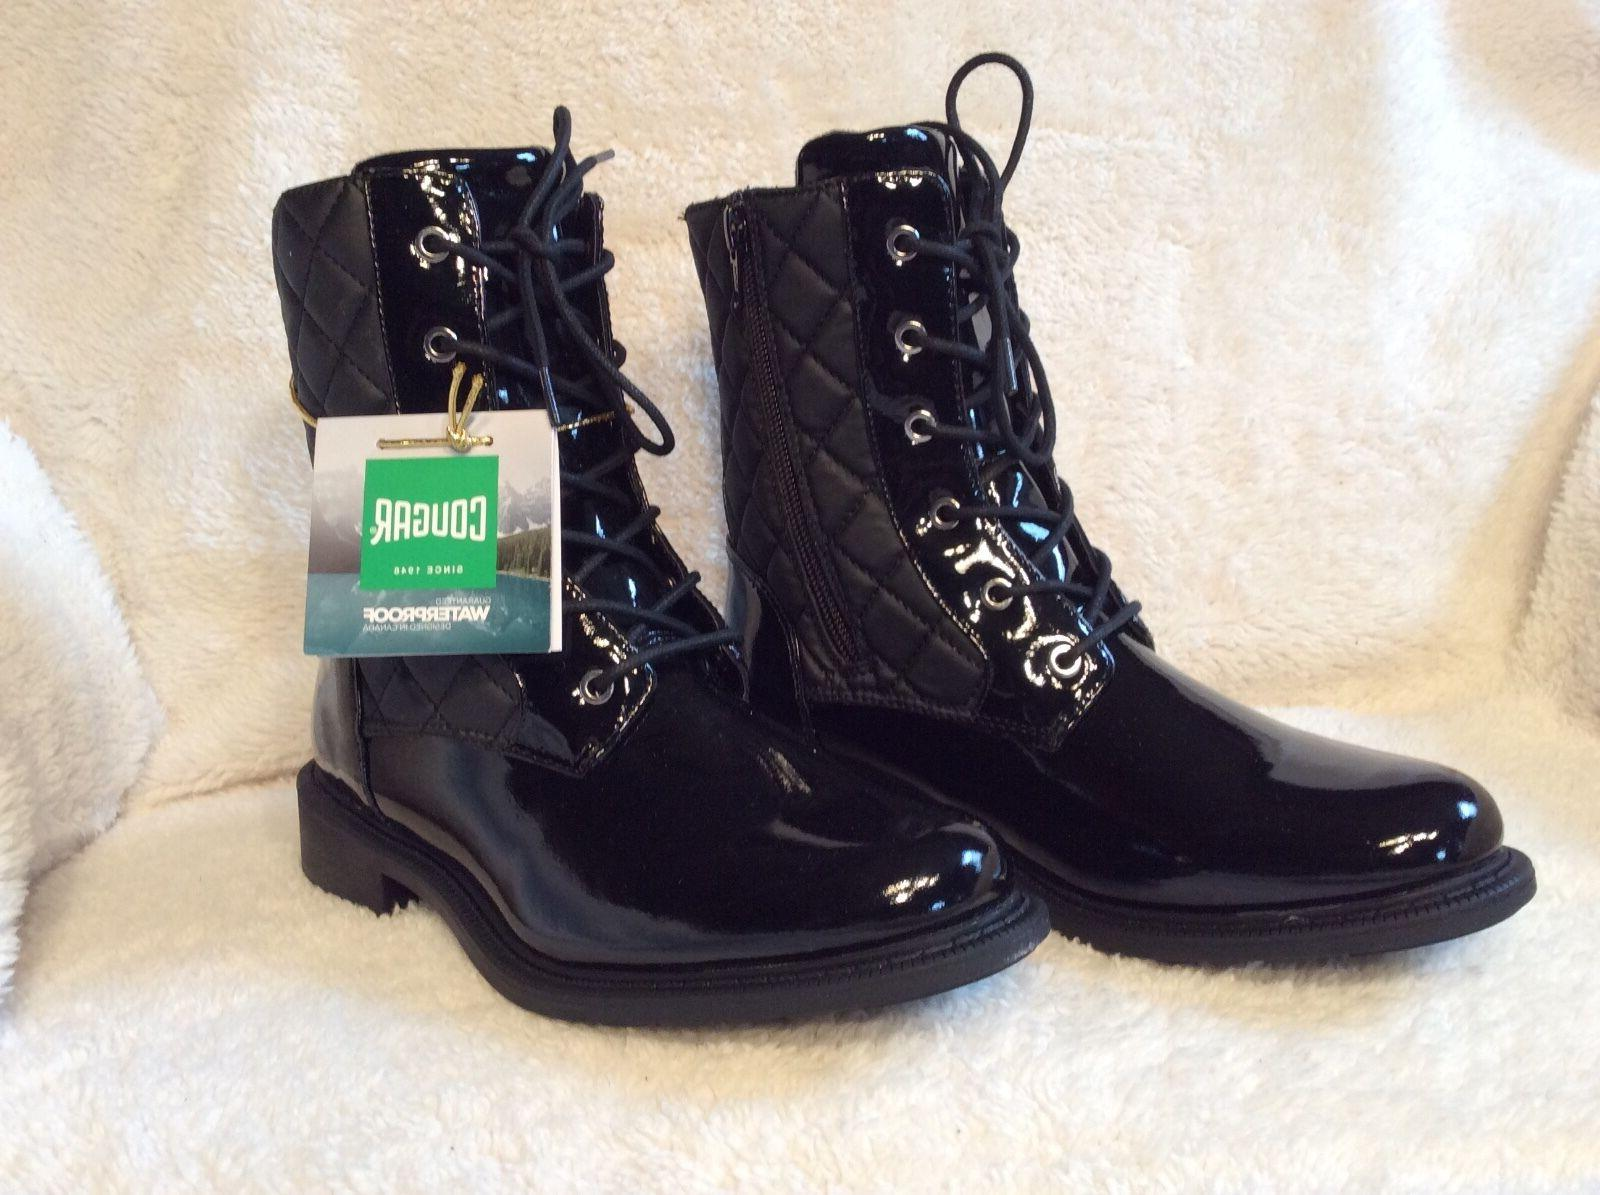 New Size 7 Woman's Black Waterproof Boots Cougar Jessy Boots